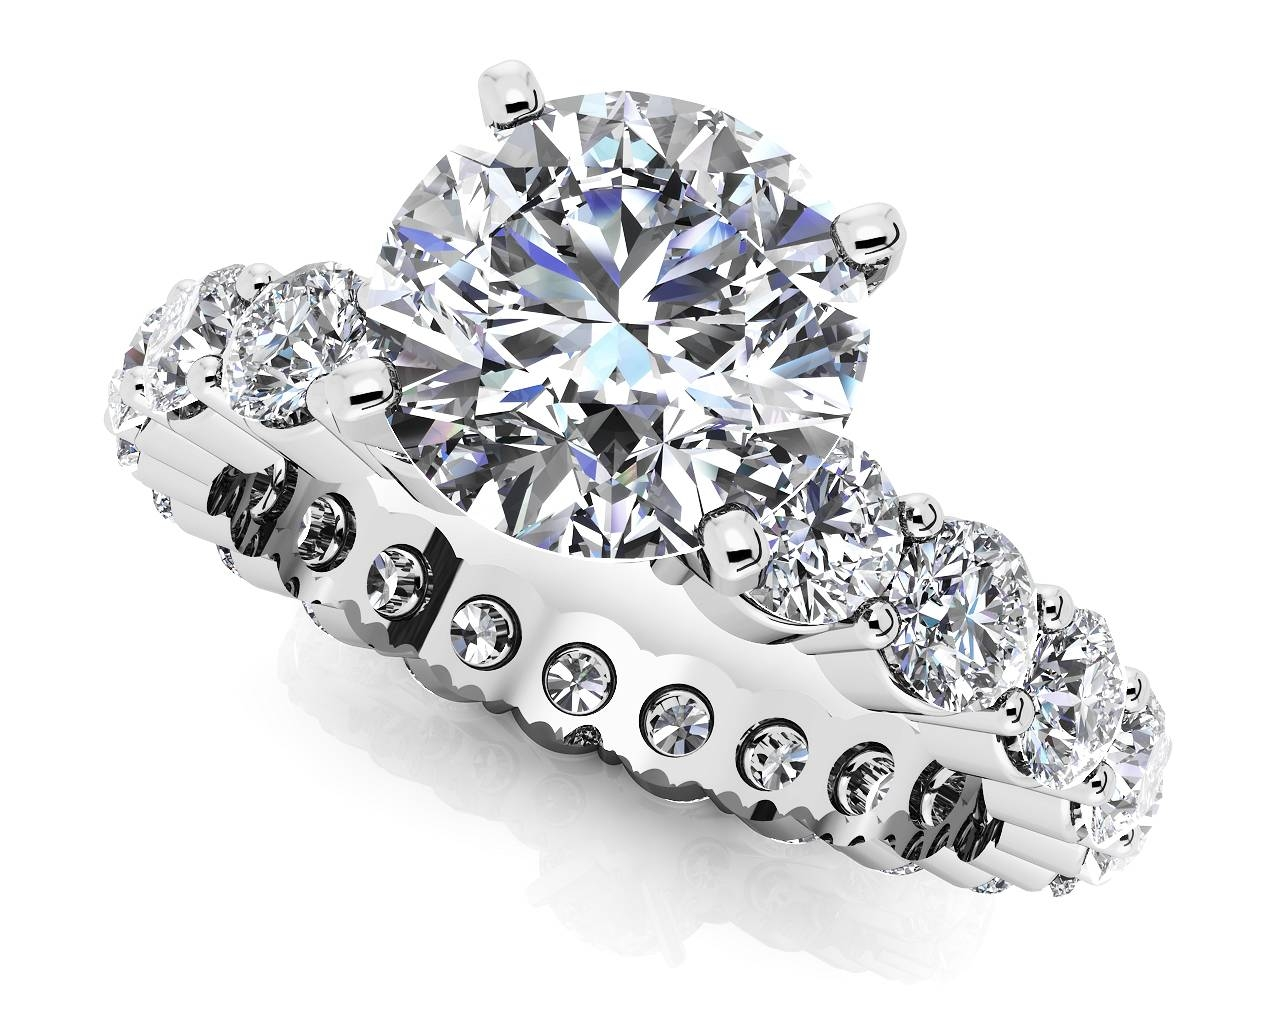 Customize Your Own High Quality Diamond Engagement Ring Throughout Diamond Wedding Rings (View 9 of 15)